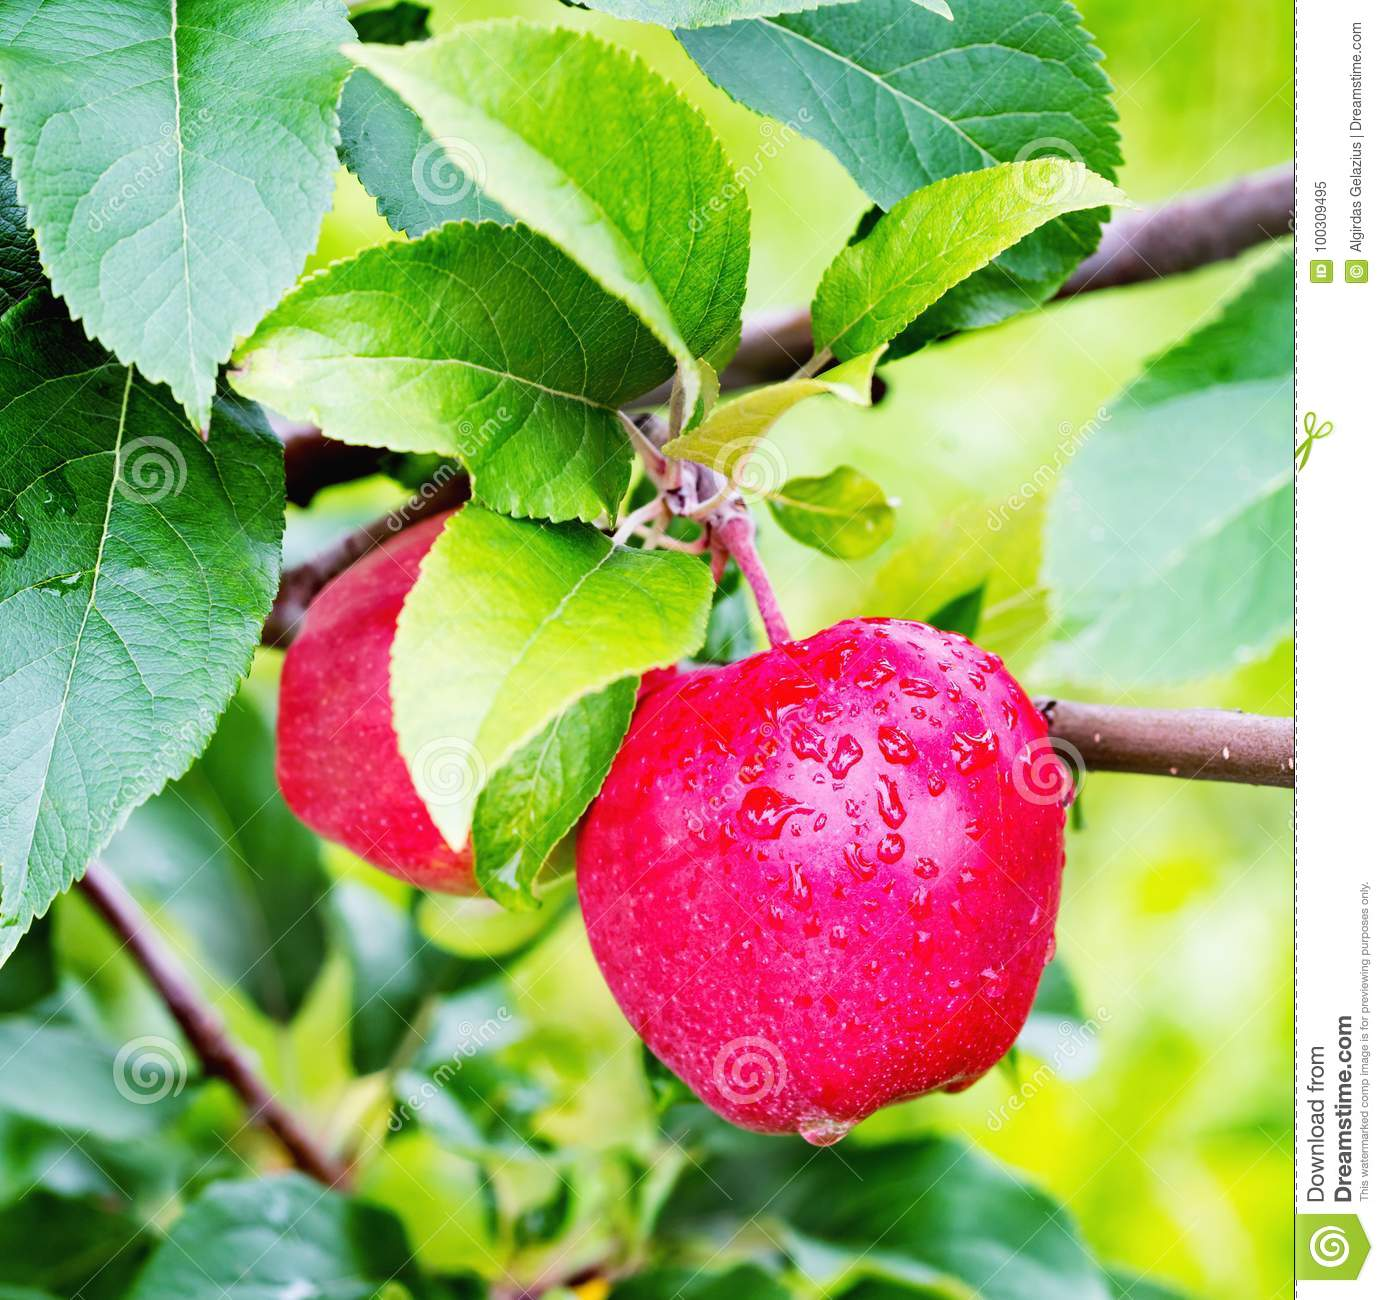 Apple tree gloster: a description of the variety, photo